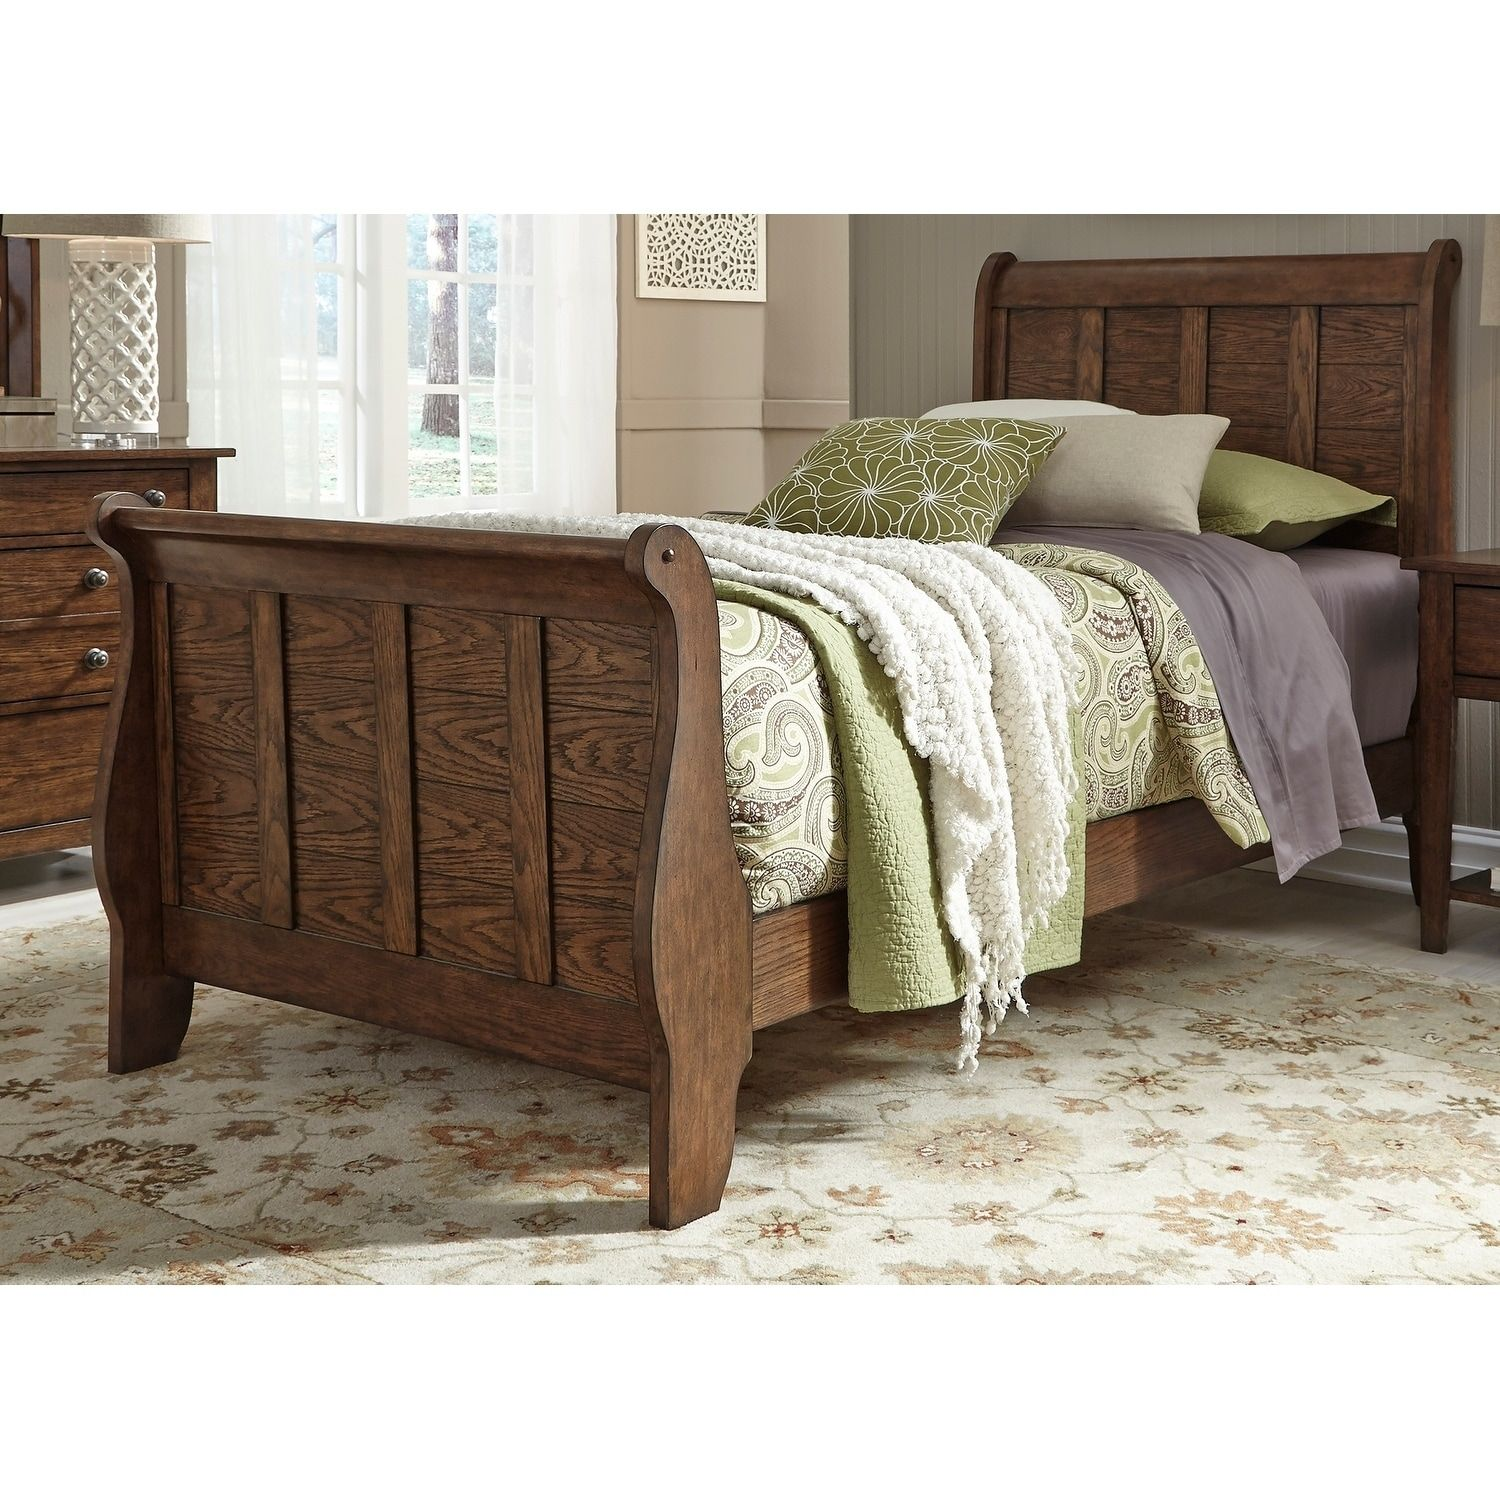 Liberty Grandpas Cabin Pebble Rock Sleigh Bed (Twin), Brown